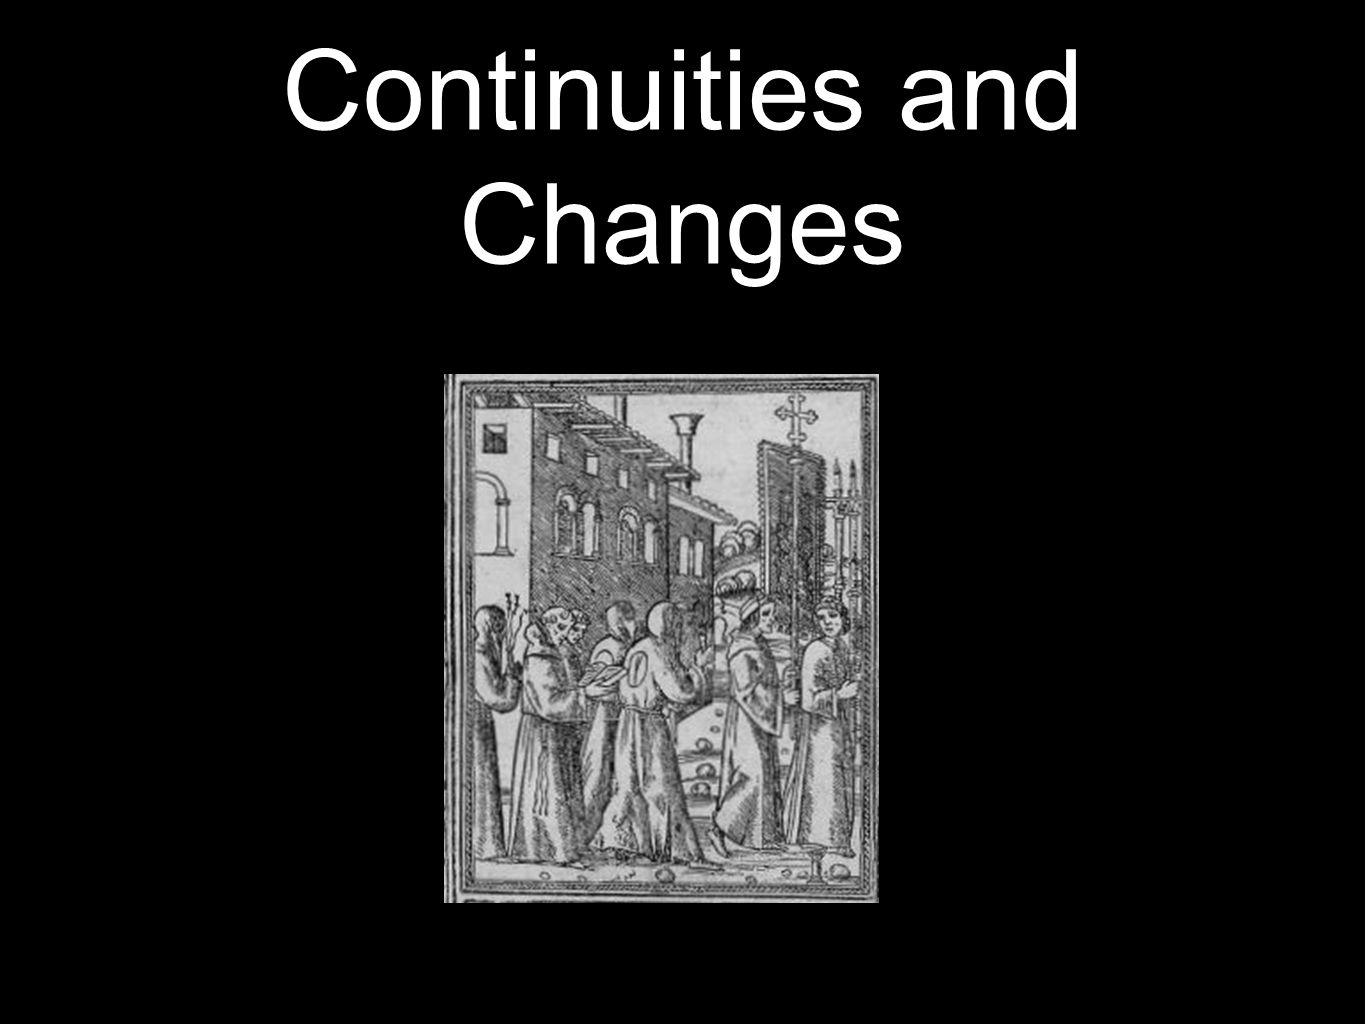 Continuities and Changes